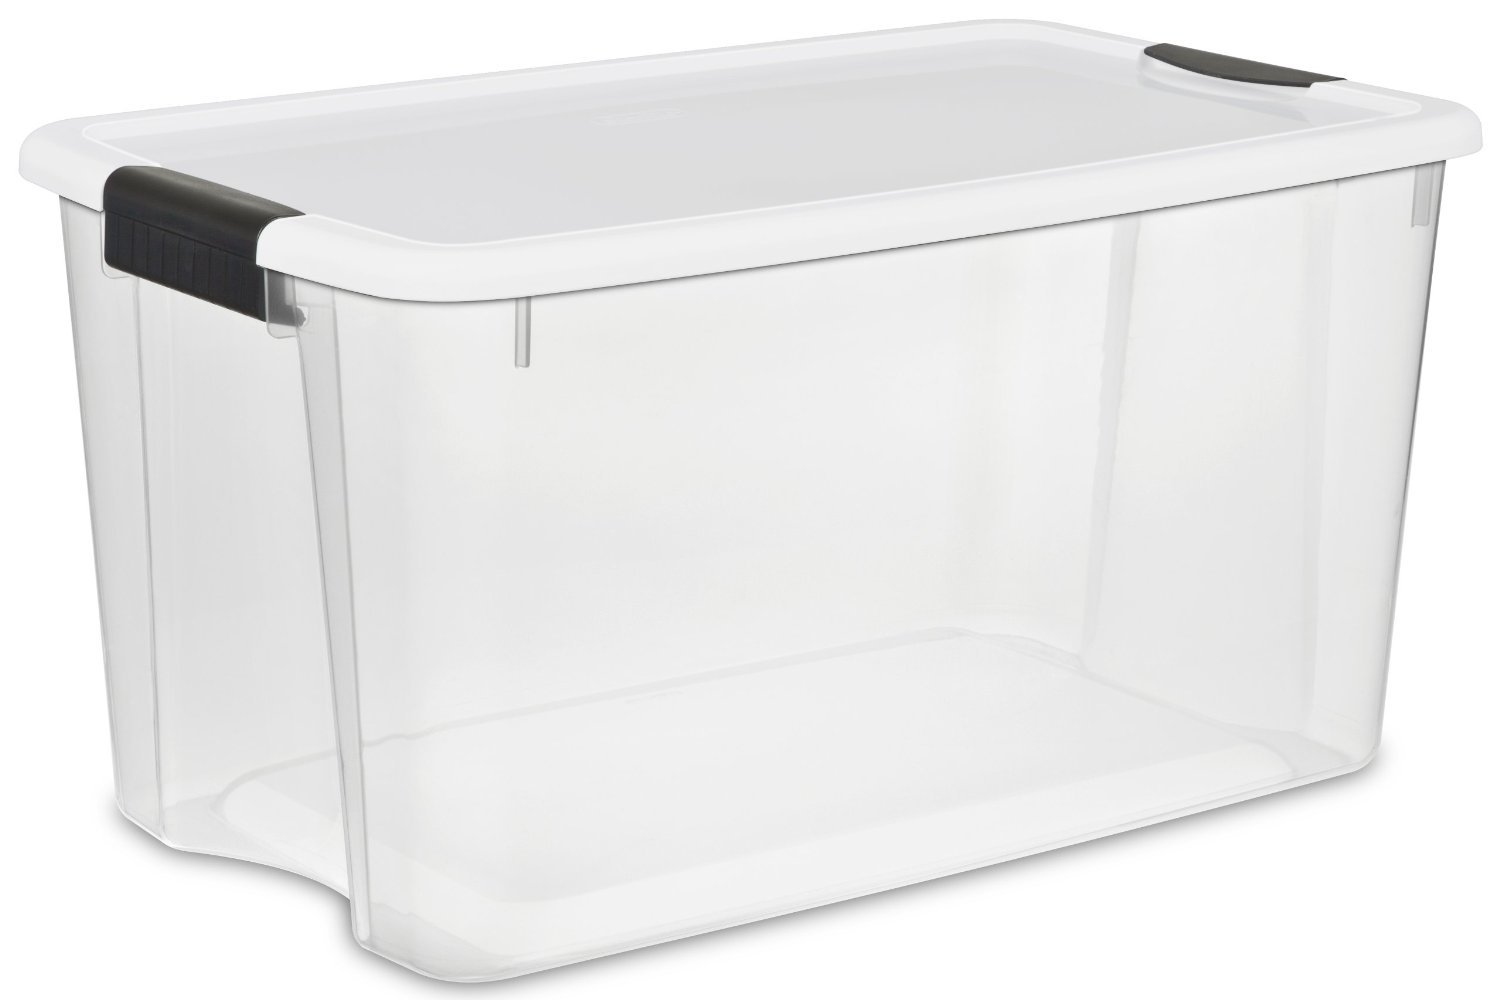 STERILITE 70 Quart/66 Liter Ultra Latch Box, Clear with a White Lid and Black Latches, (8-Pack)